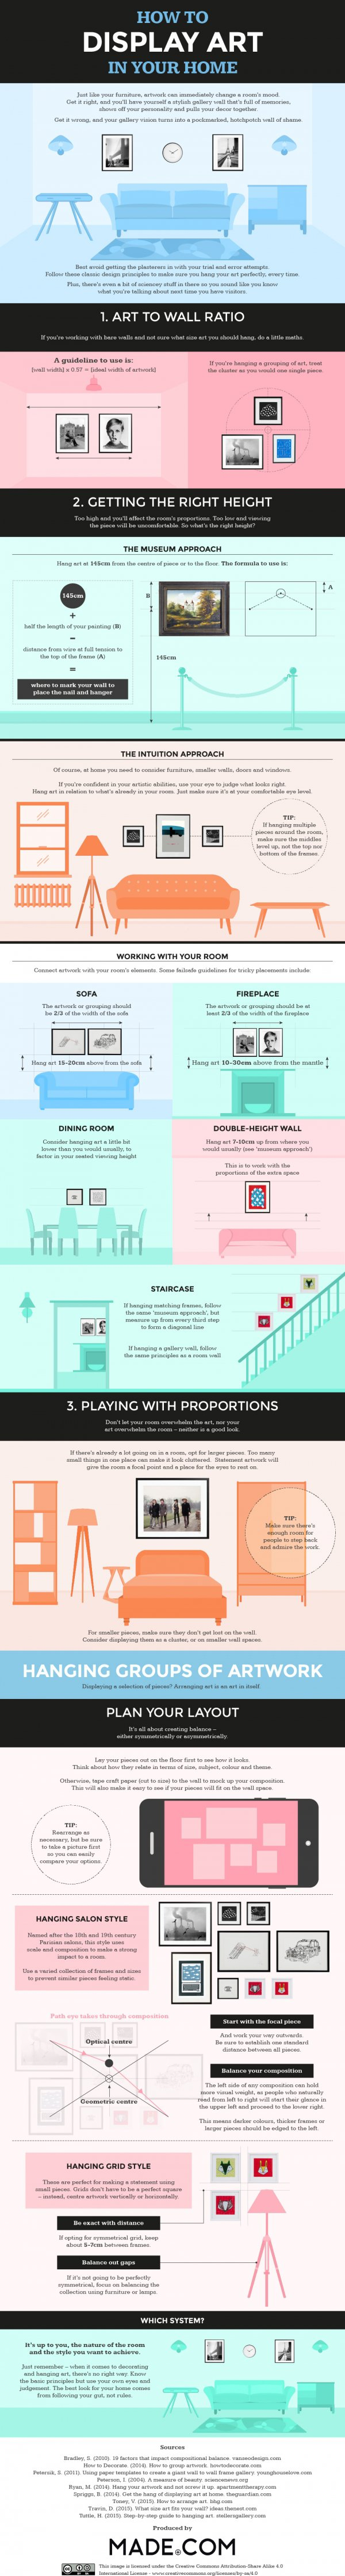 Simple Rules of Thumb for Decorating Your Walls